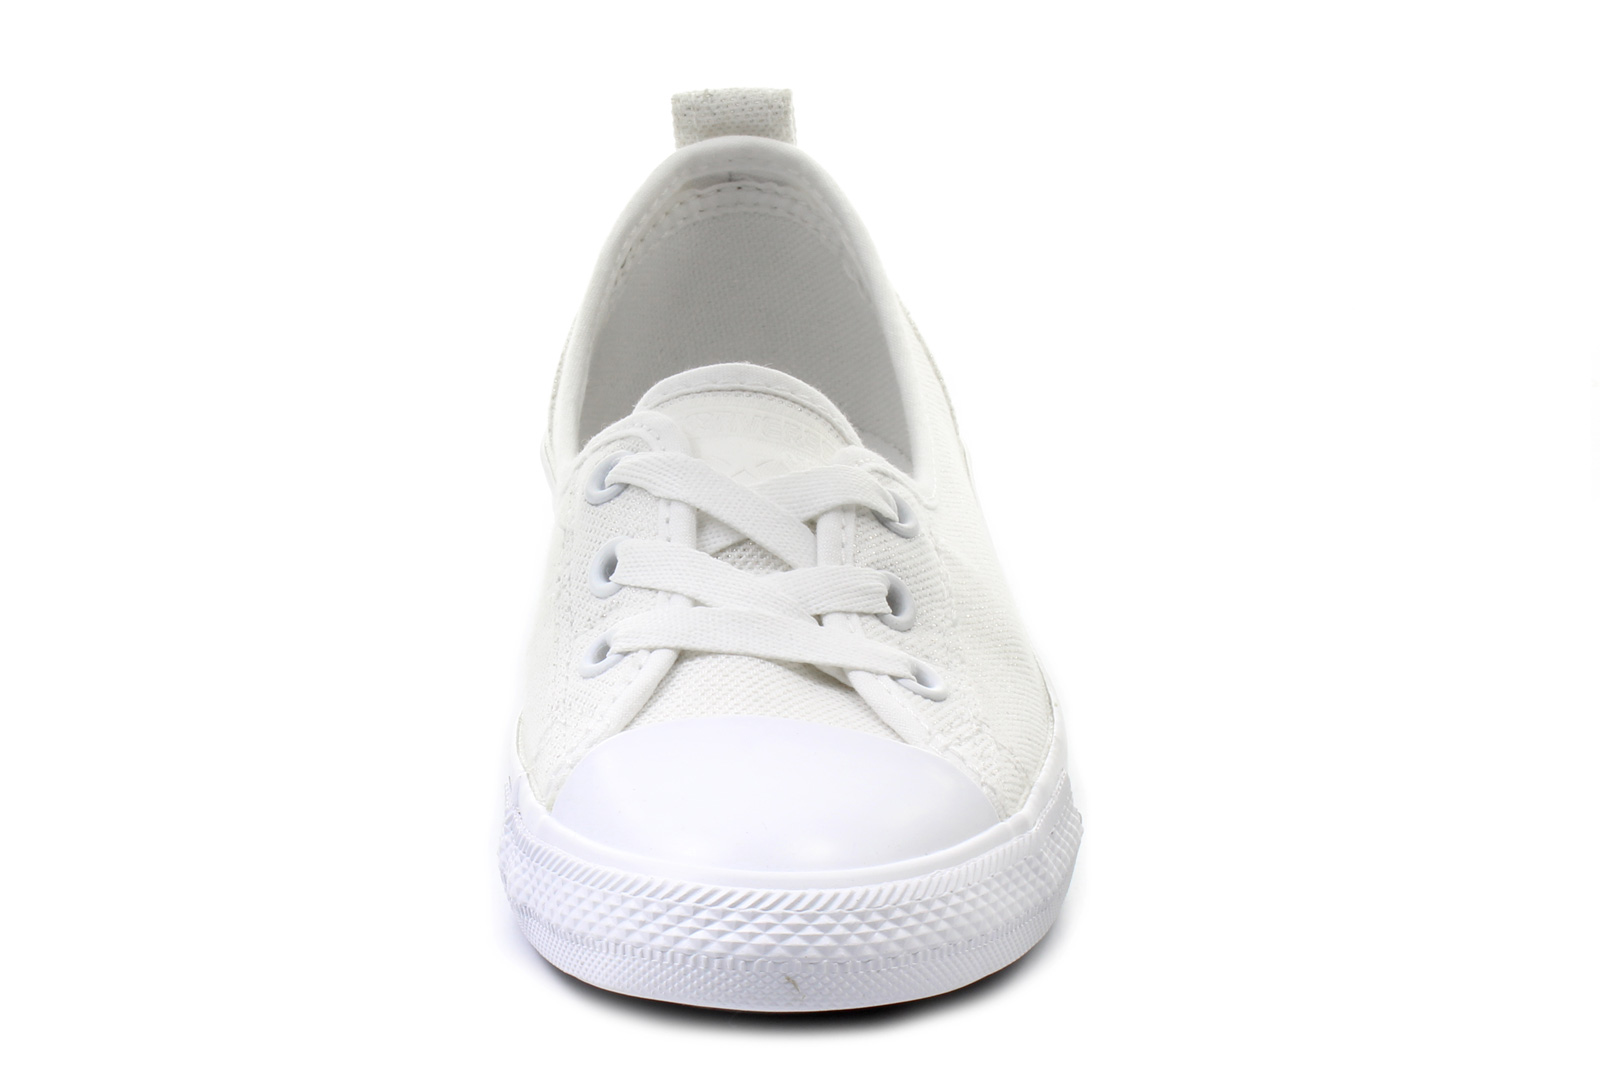 907f516c64f Converse Tenisi - Chuck Taylor All Star Ballet Lace - 547161C ...